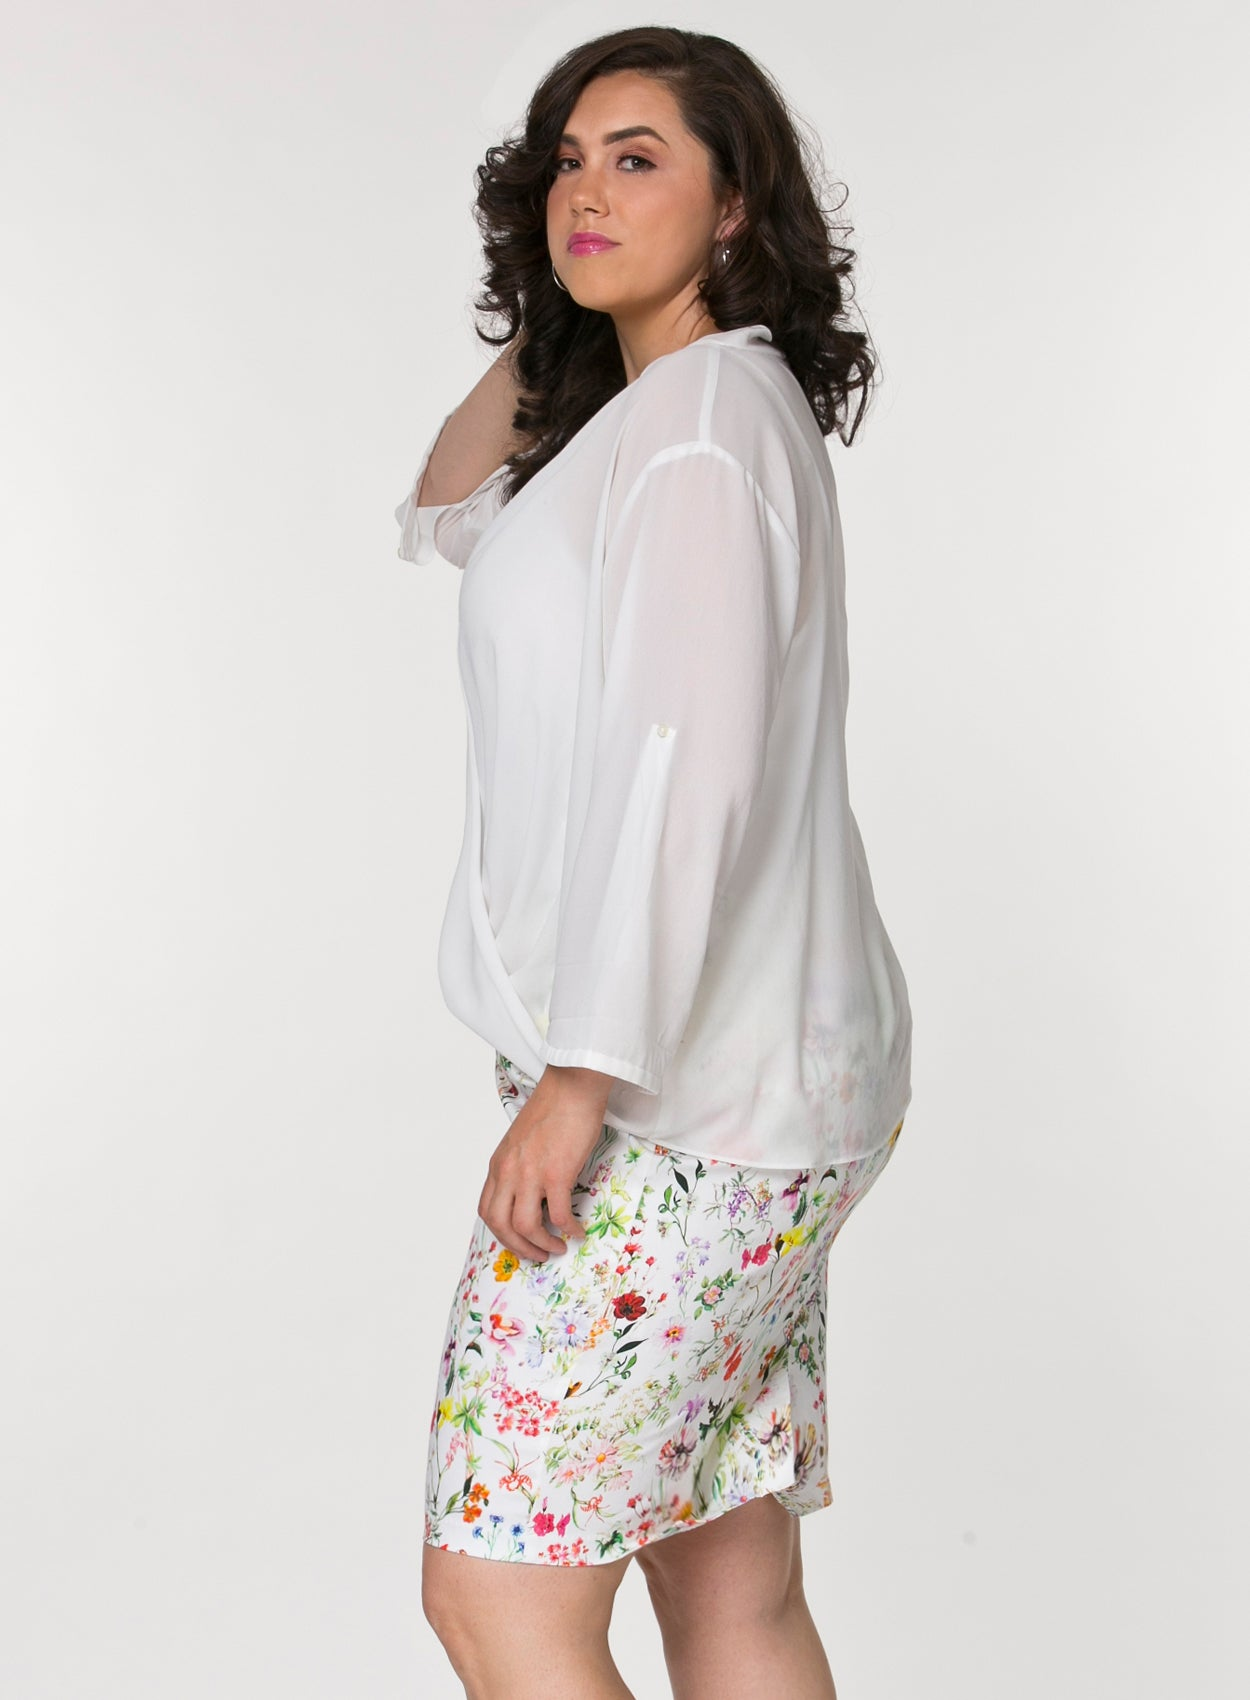 2bd61daaba7 ... CURVY PLUS SIZE PENCIL SKIRT IN WHITE COTTON FLORAL PRINT ...